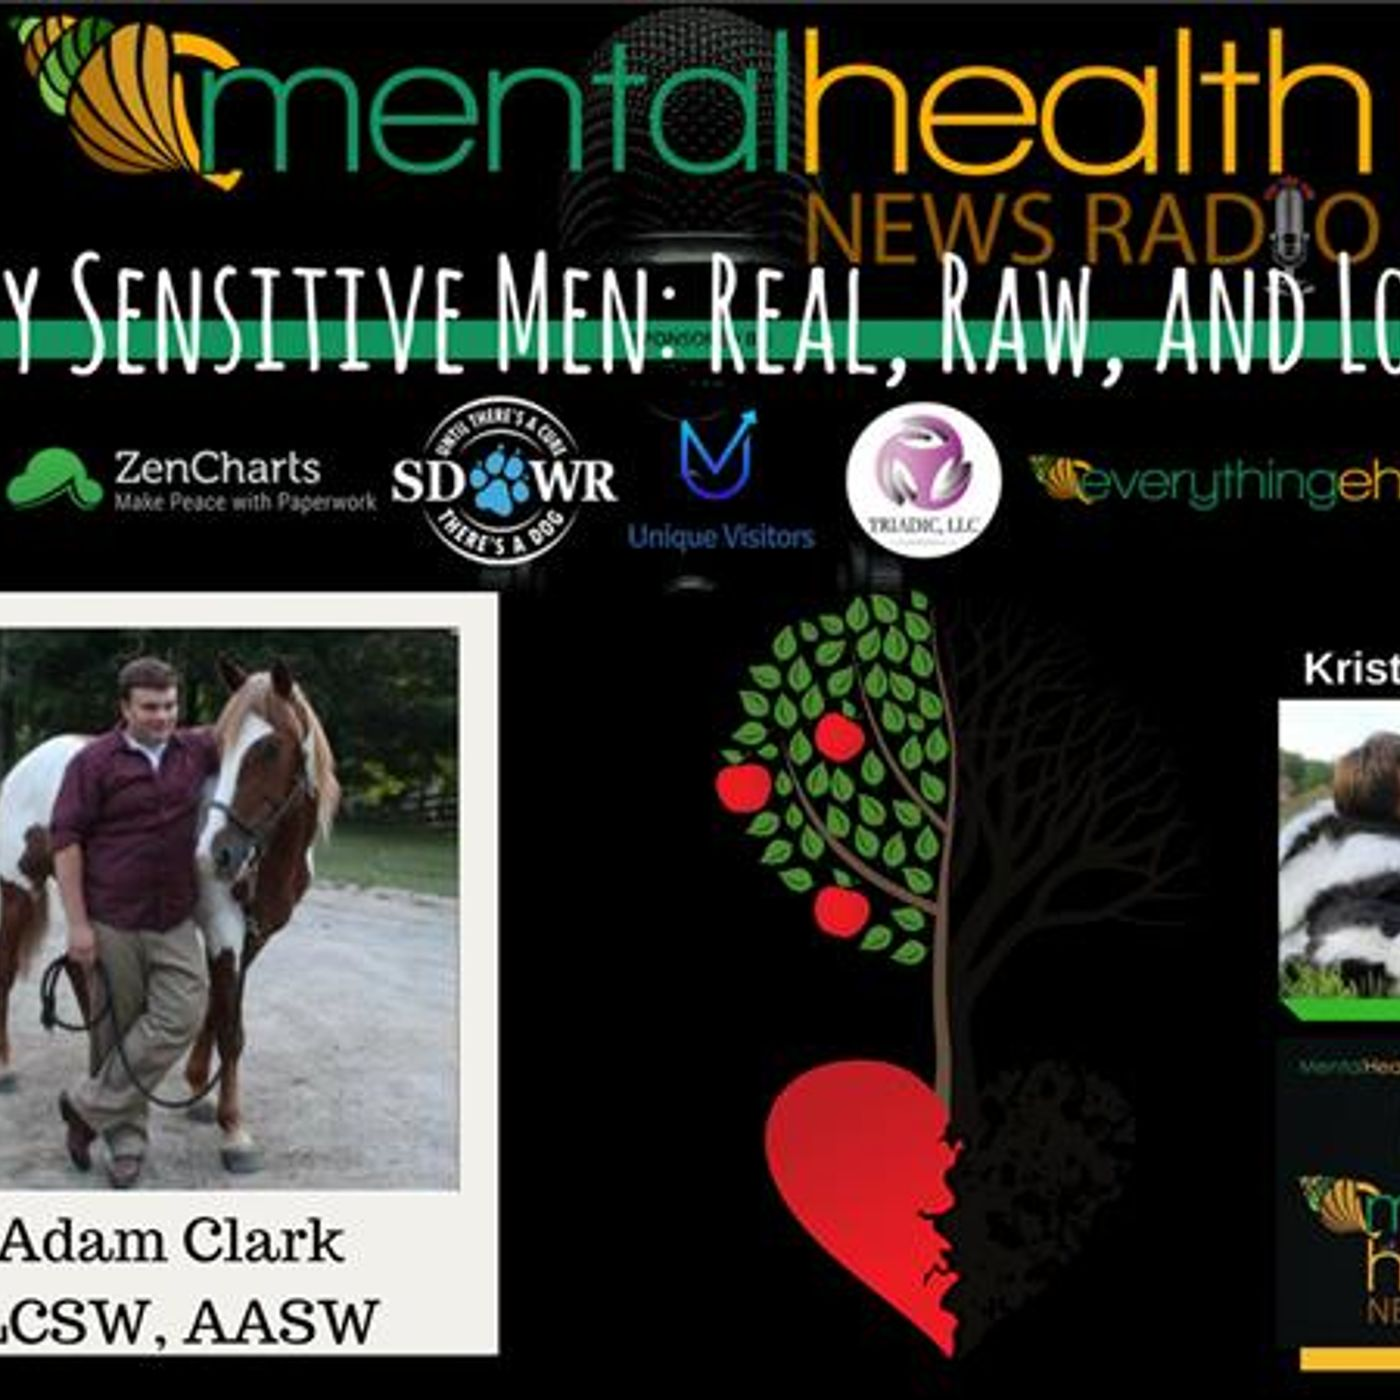 Mental Health News Radio - Highly Sensitive Men: Real, Raw, and Loving with Adam Clark